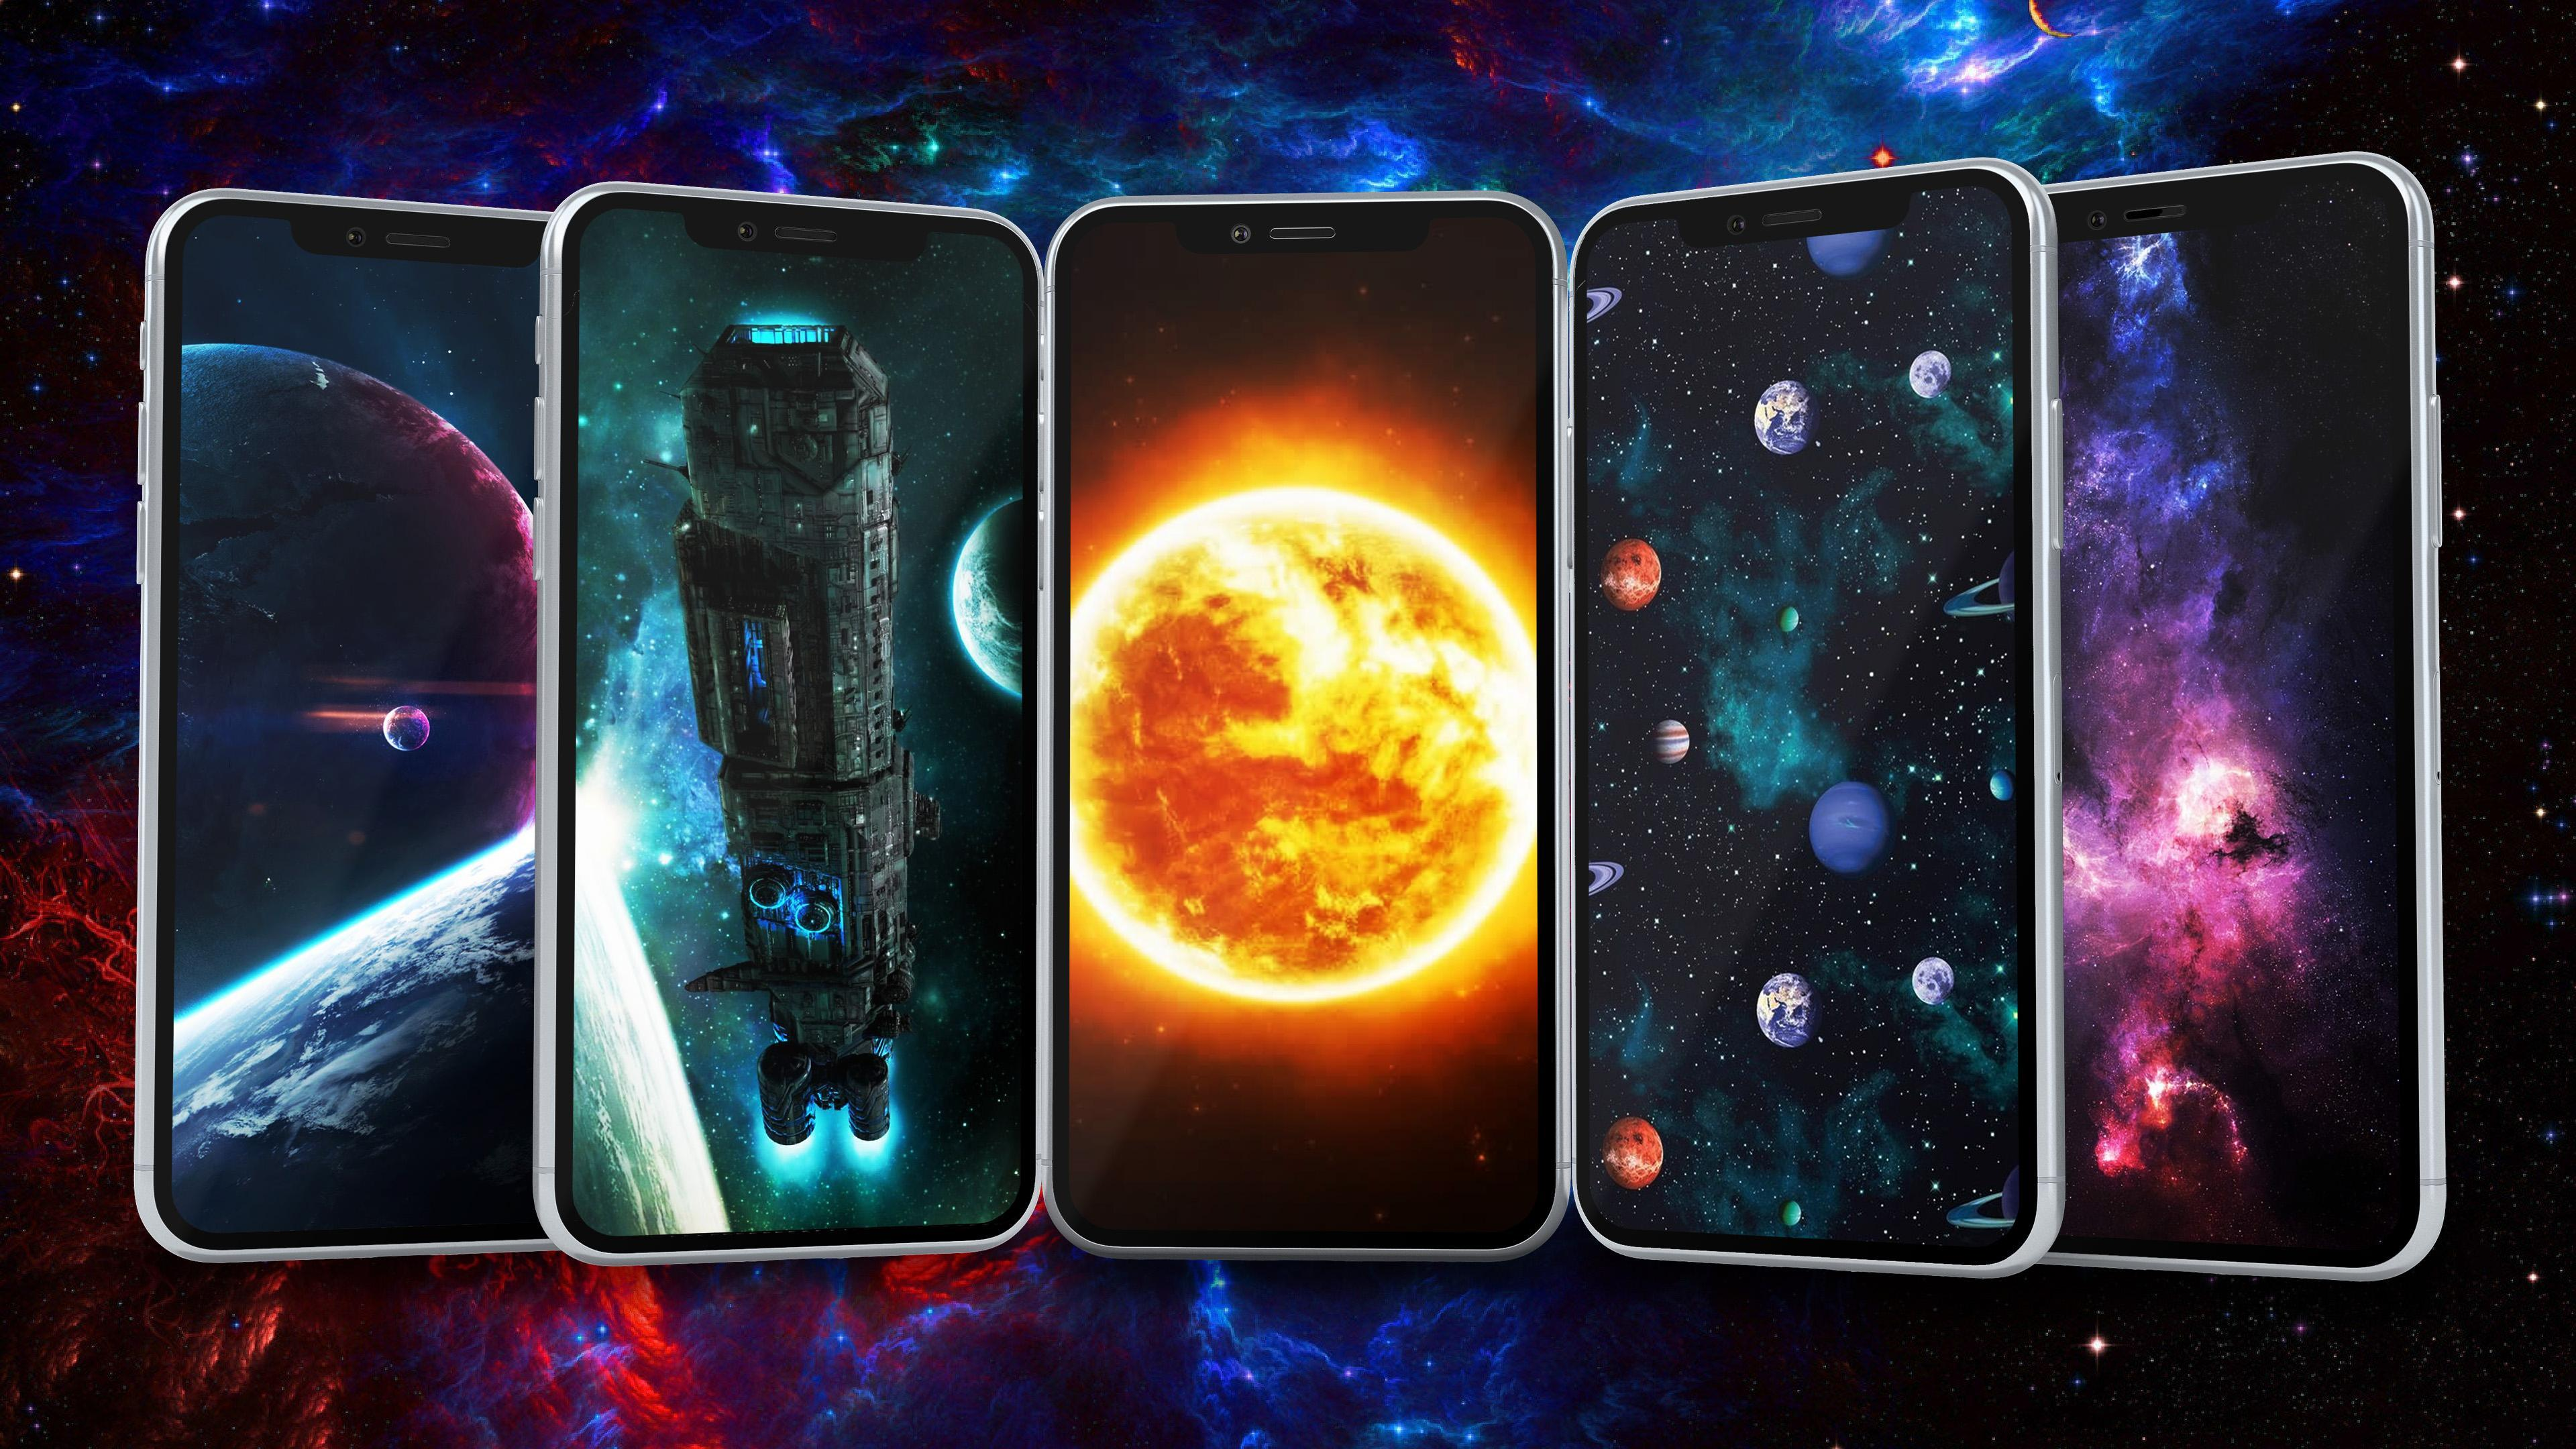 Space Wallpaper 4k Hd For Android Apk Download